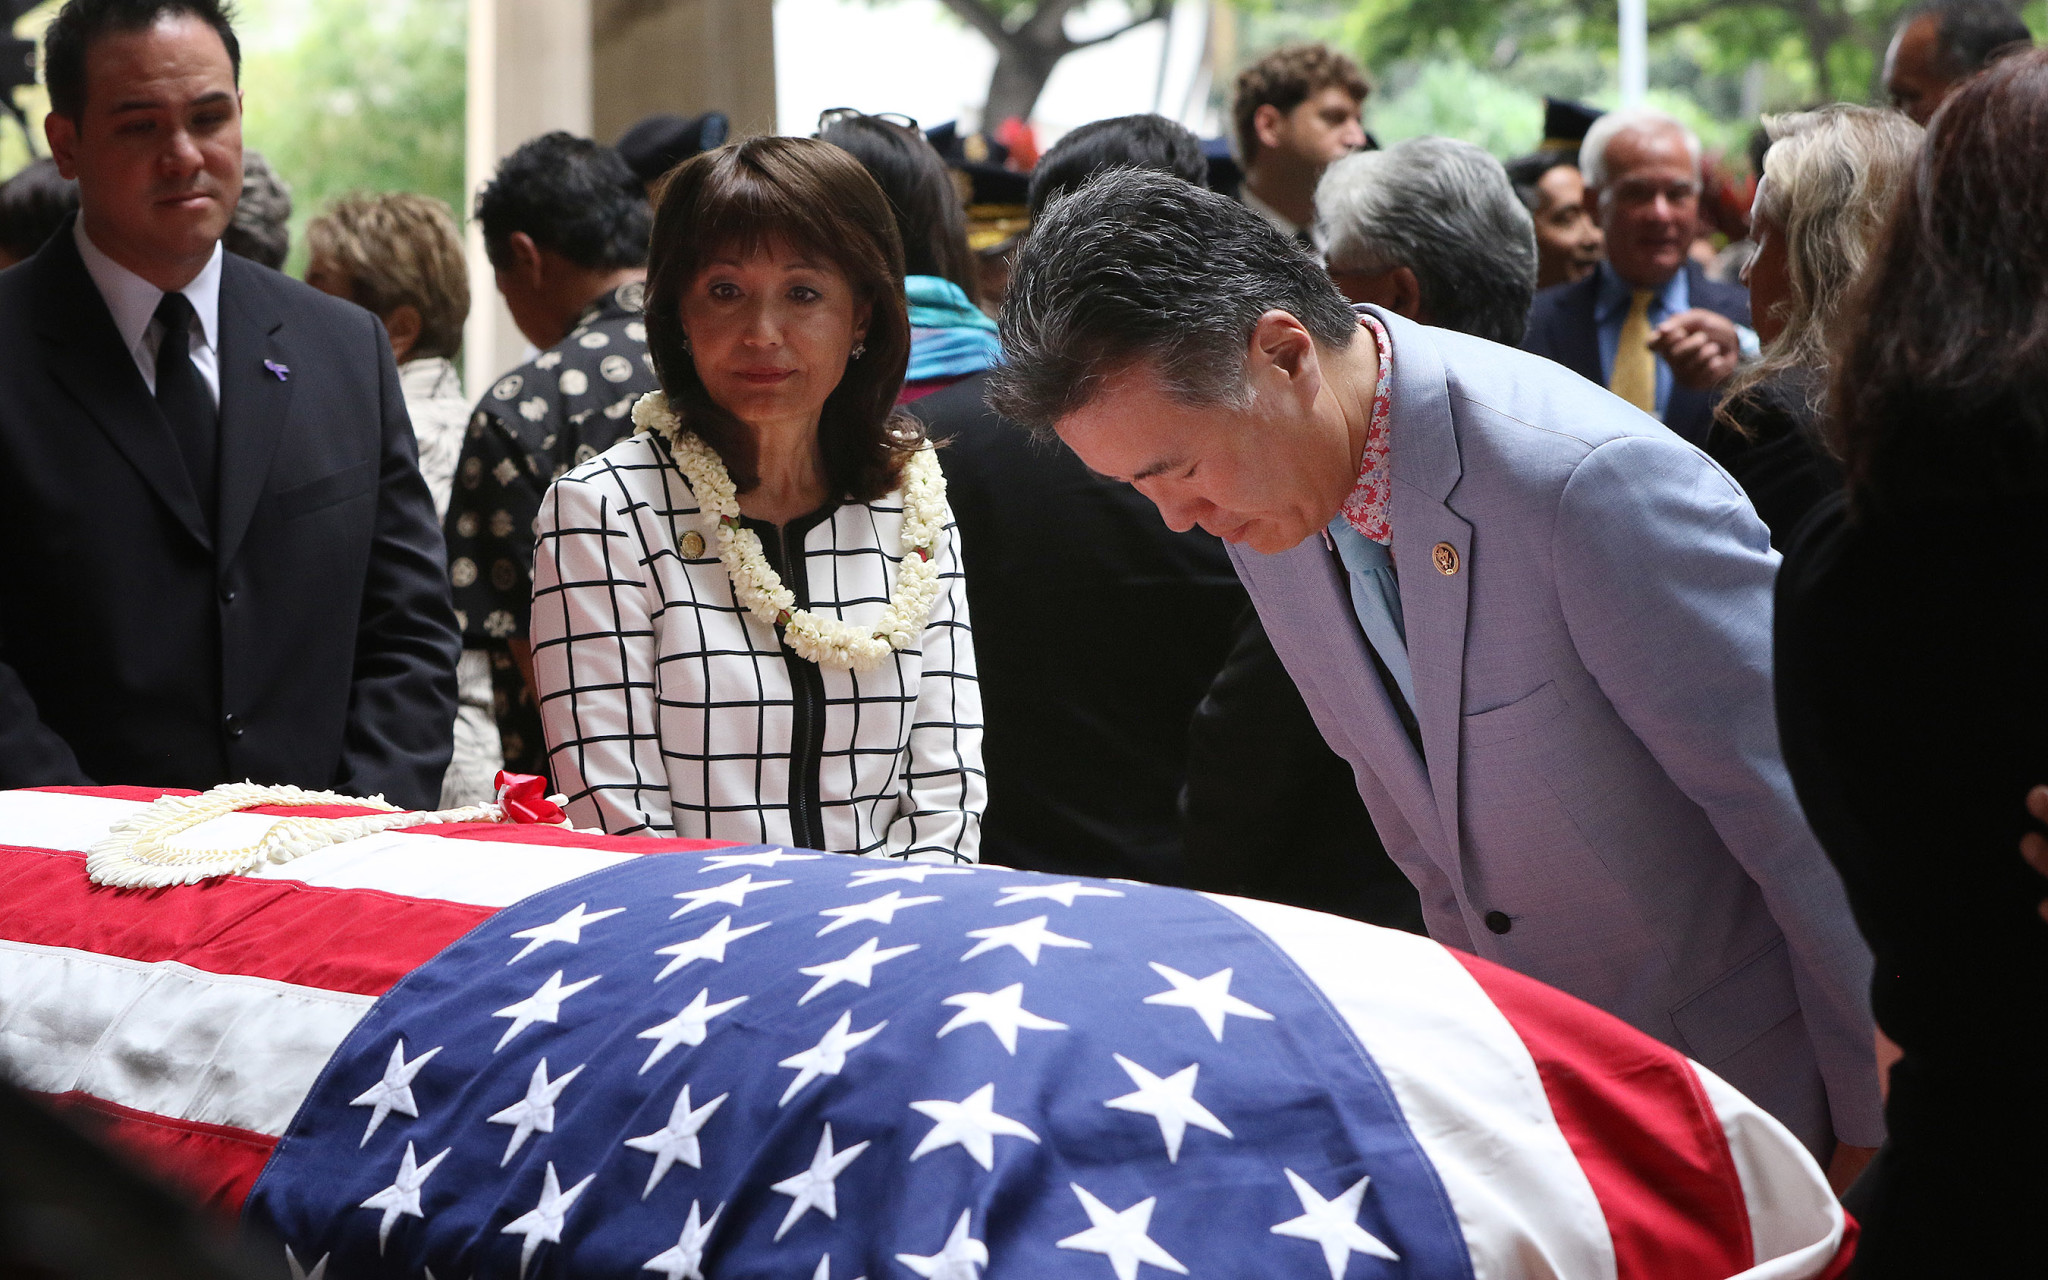 <p>California Congressman Mark Takano bows his head at Takai&#8217;s casket, as state Sen. Donna Mercado Kim and state Rep. Aaron Ling Johanson wait to pay their respects.</p>